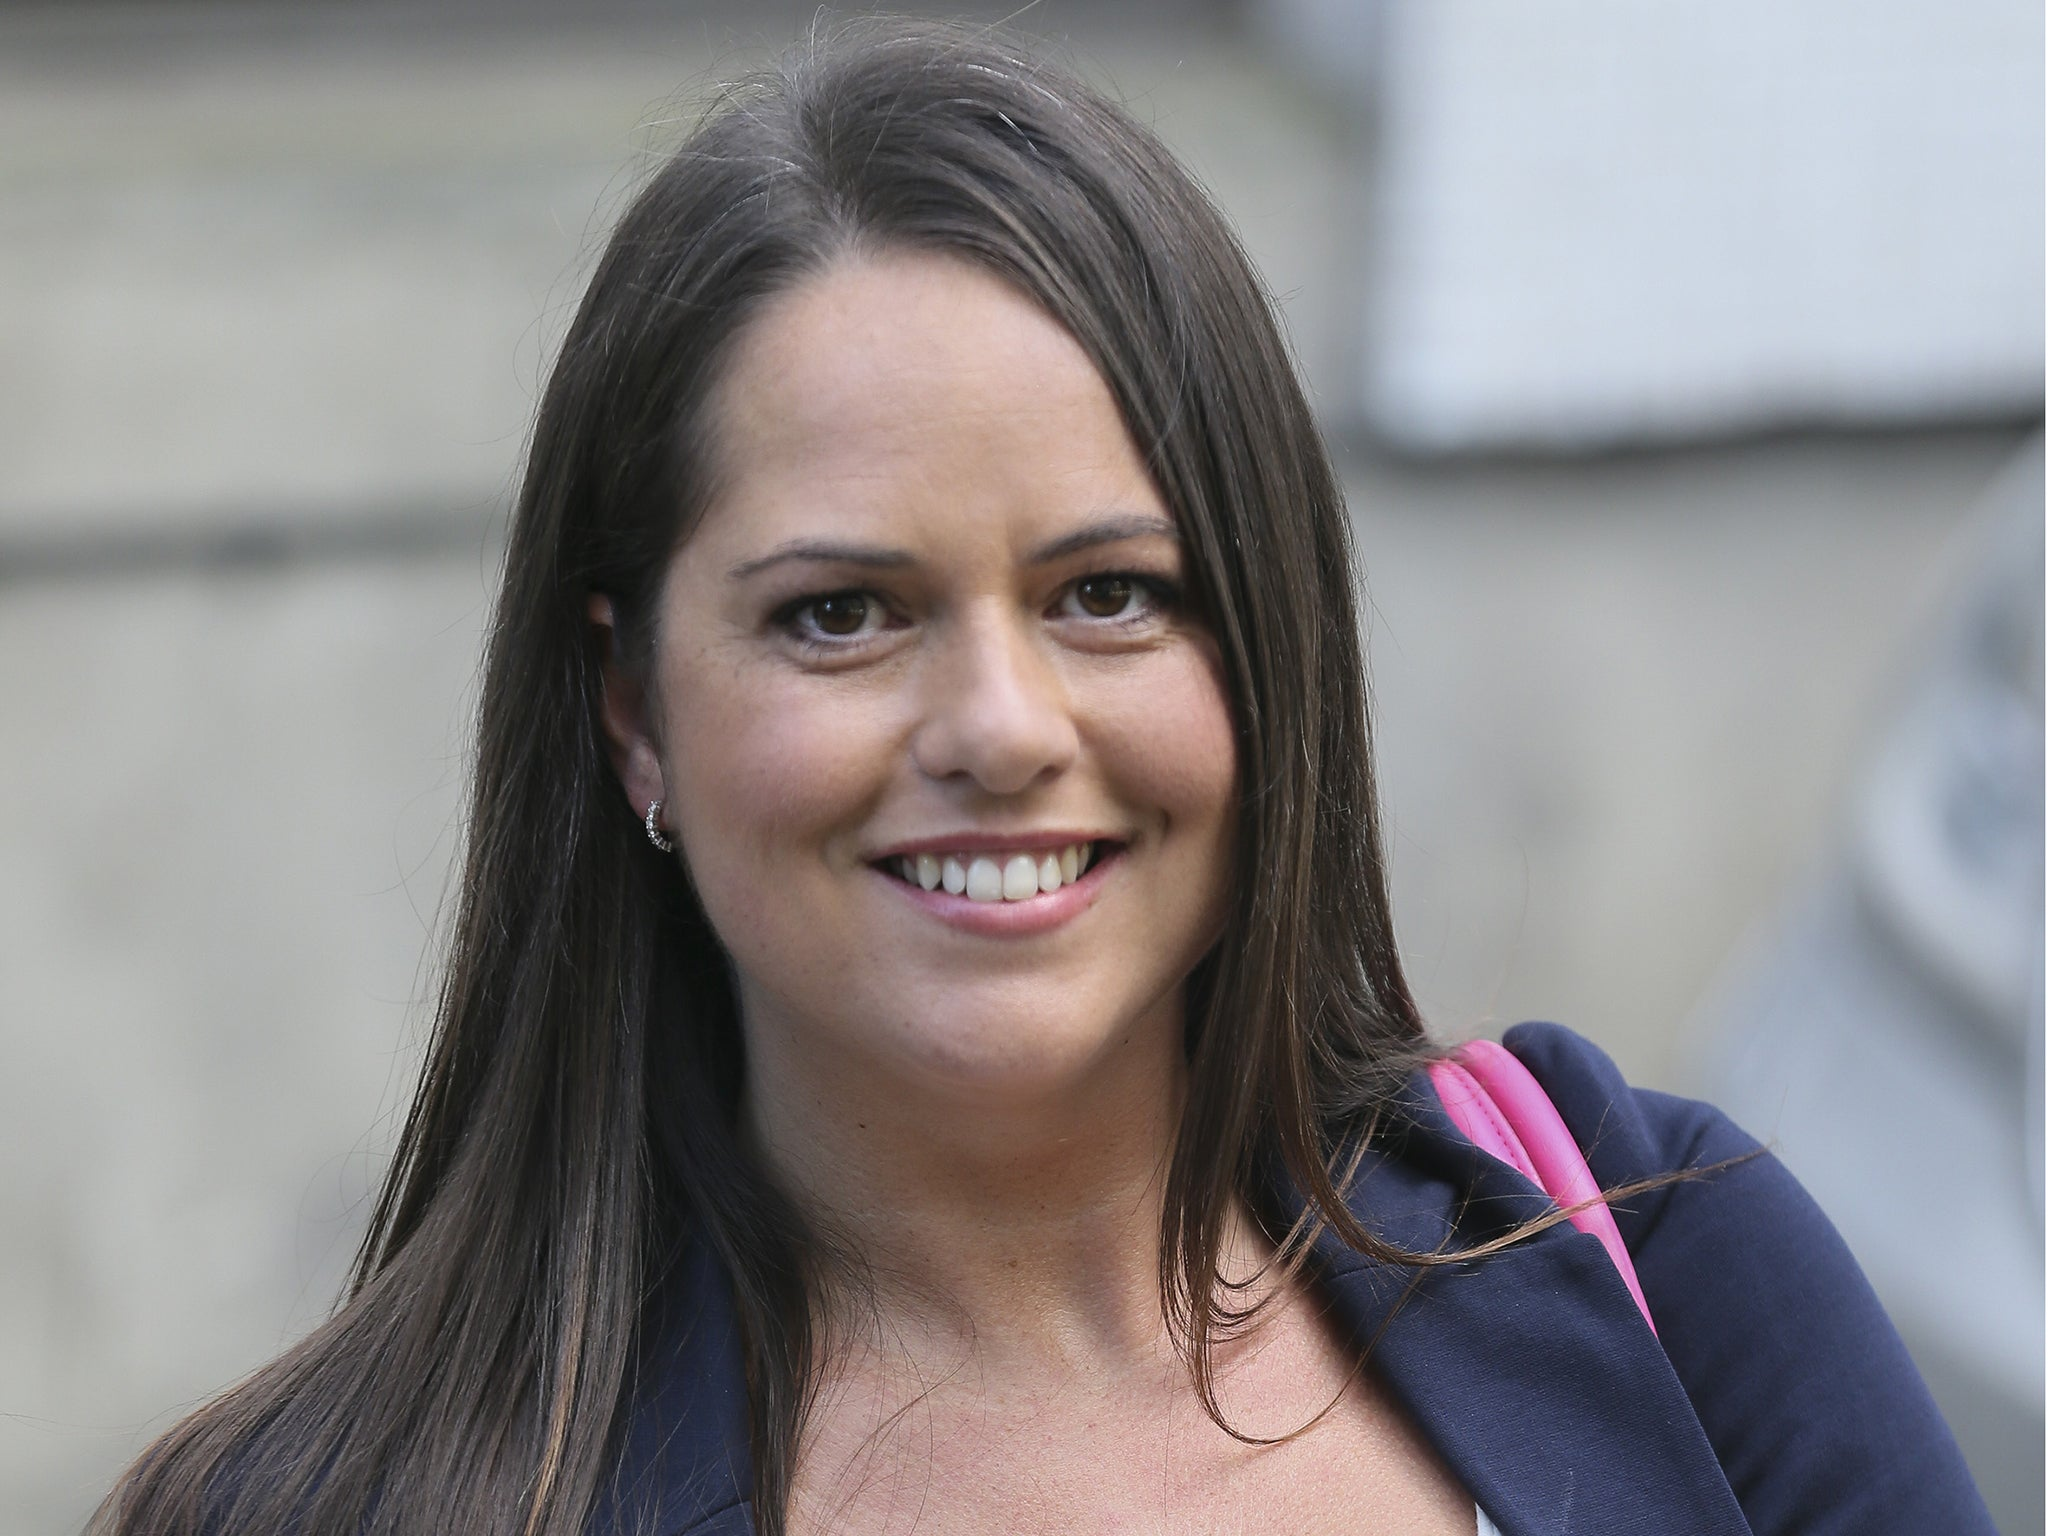 nudes Karen Danczuk (39 pictures) Boobs, YouTube, cleavage